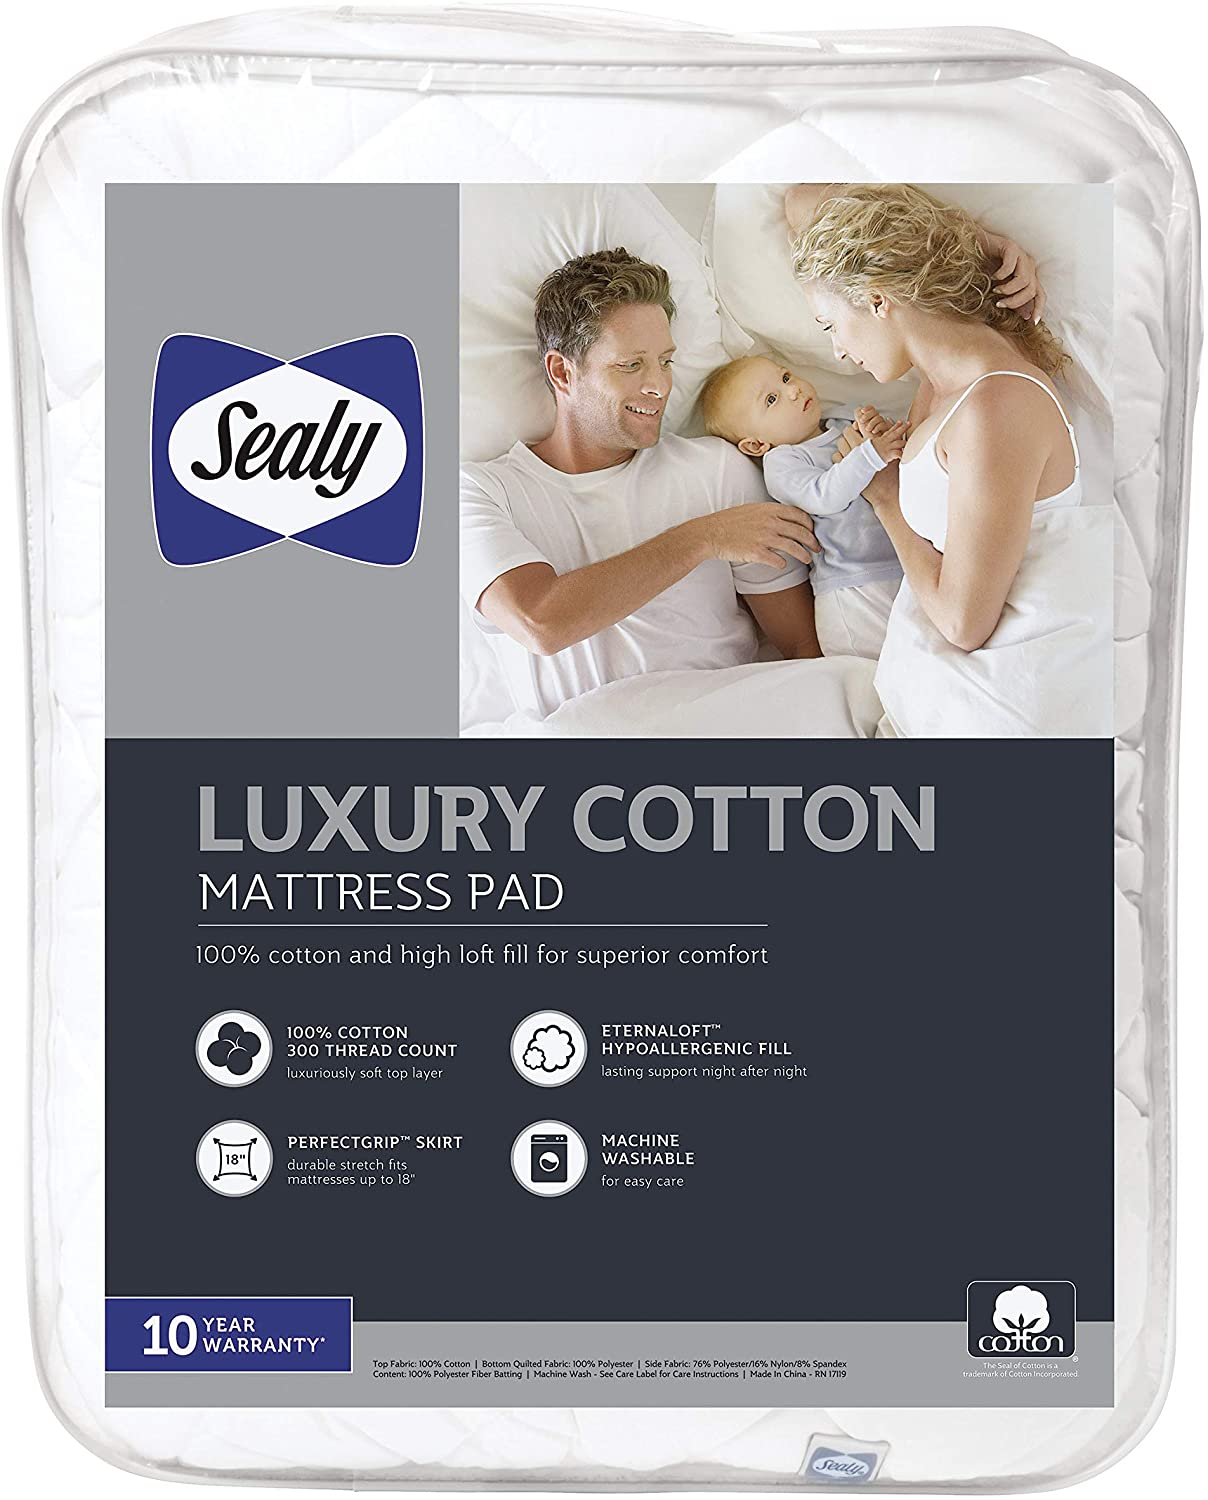 Sealy Luxury 100% Cotton Mattress Pad - Queen